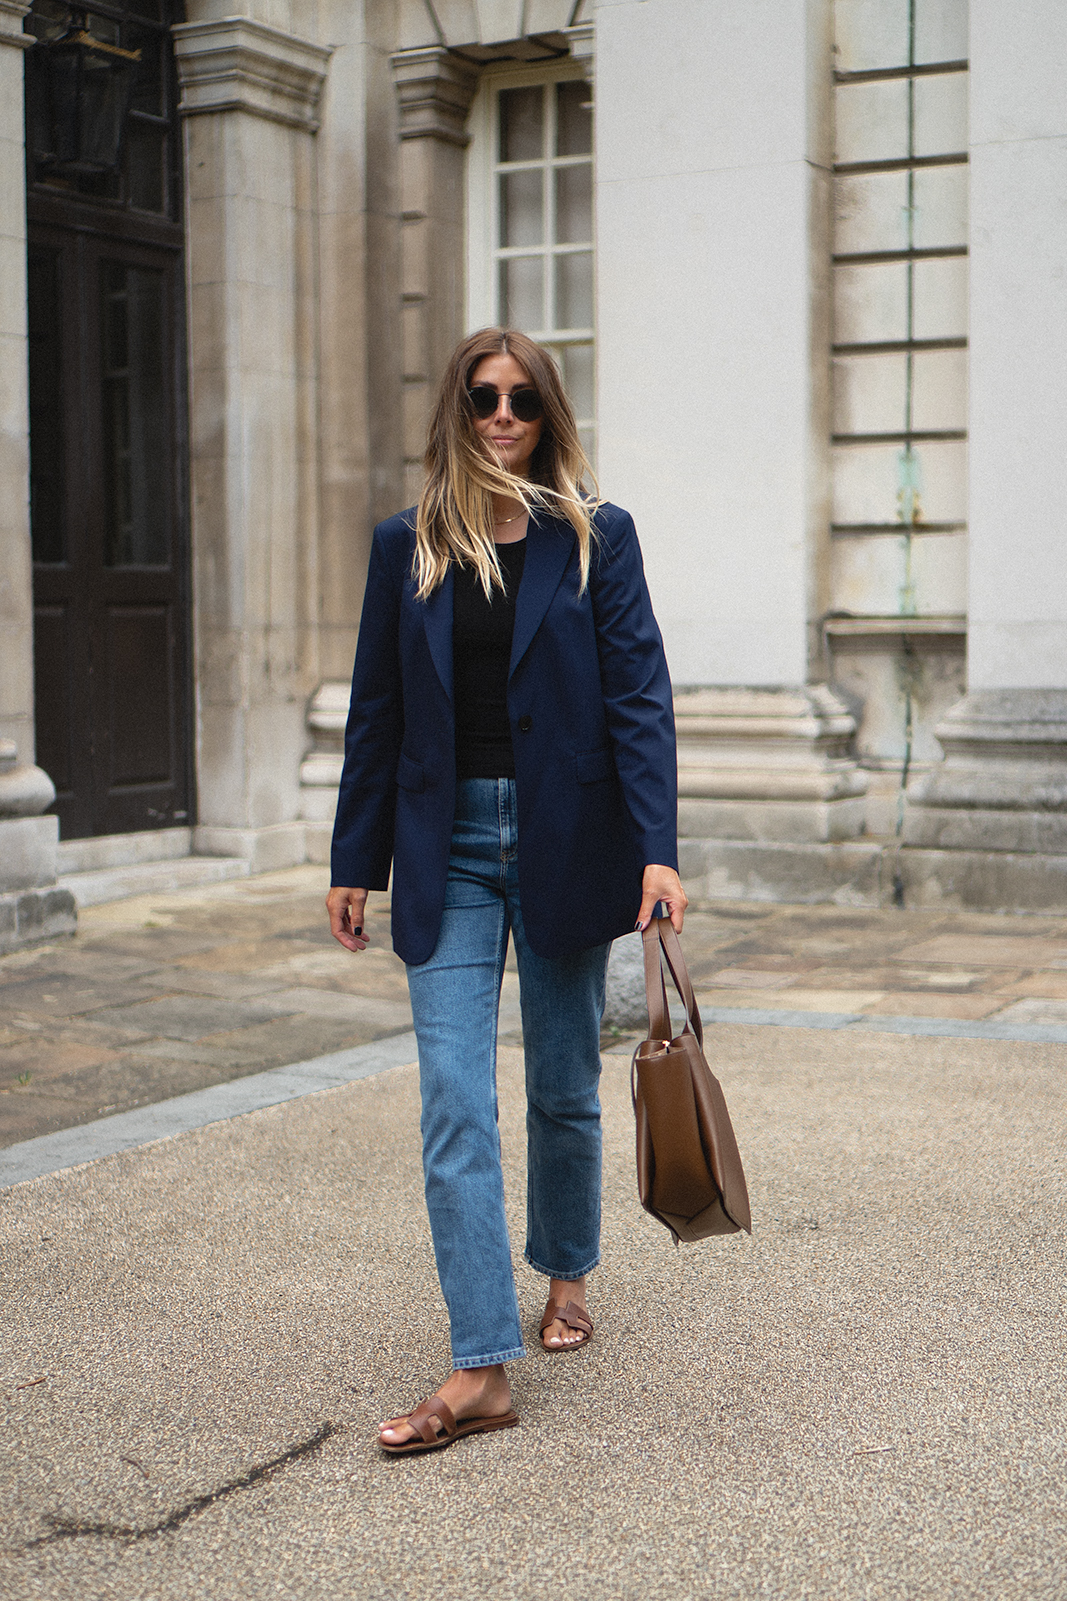 Emma Hill wears navy The Curated x Emma Hill blazer, mid wash straight leg jeans, Hermes Oran sandals, tan leather Celine Tri-Fold bag. Chic Spring Summer outfit